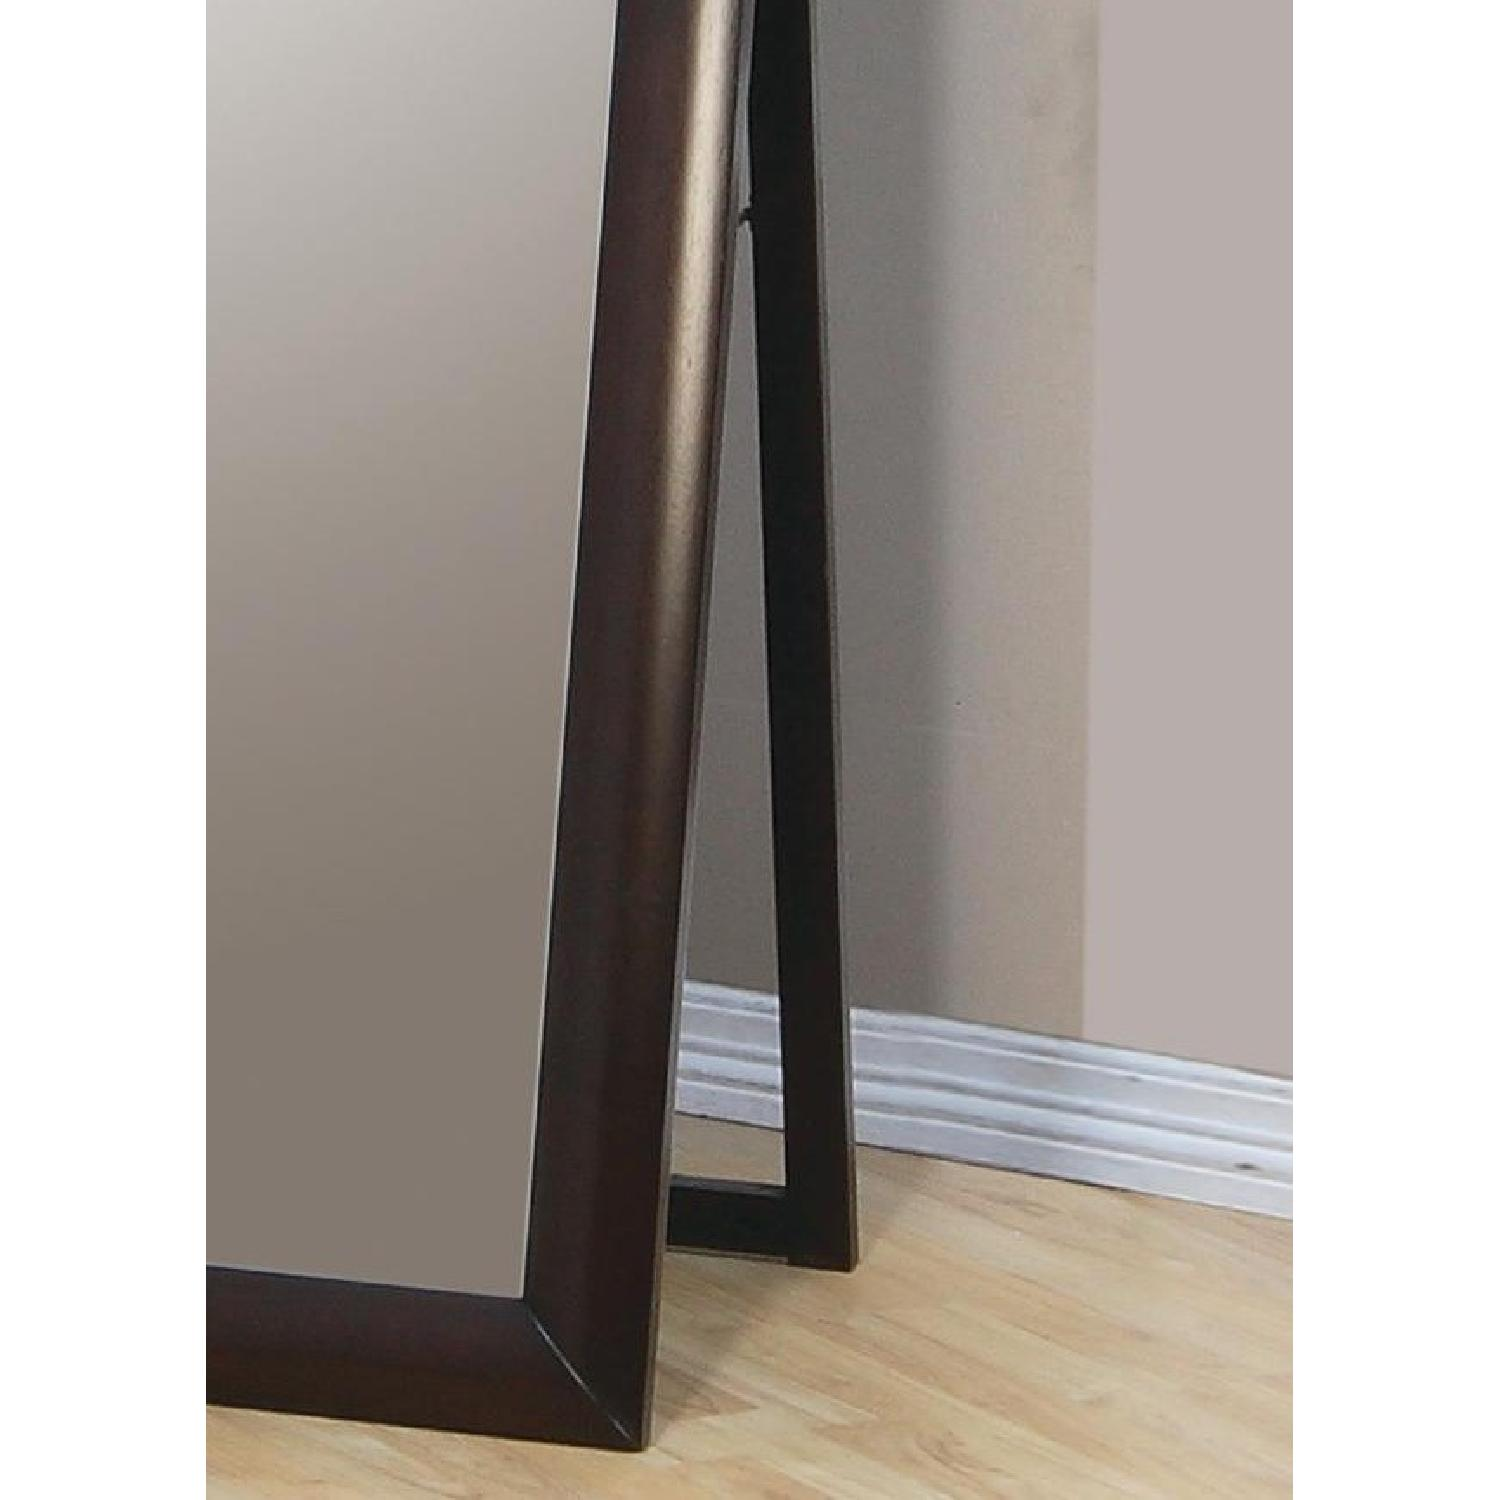 Contemporary Standing Floor Mirror in Warm Brown Finish - image-3